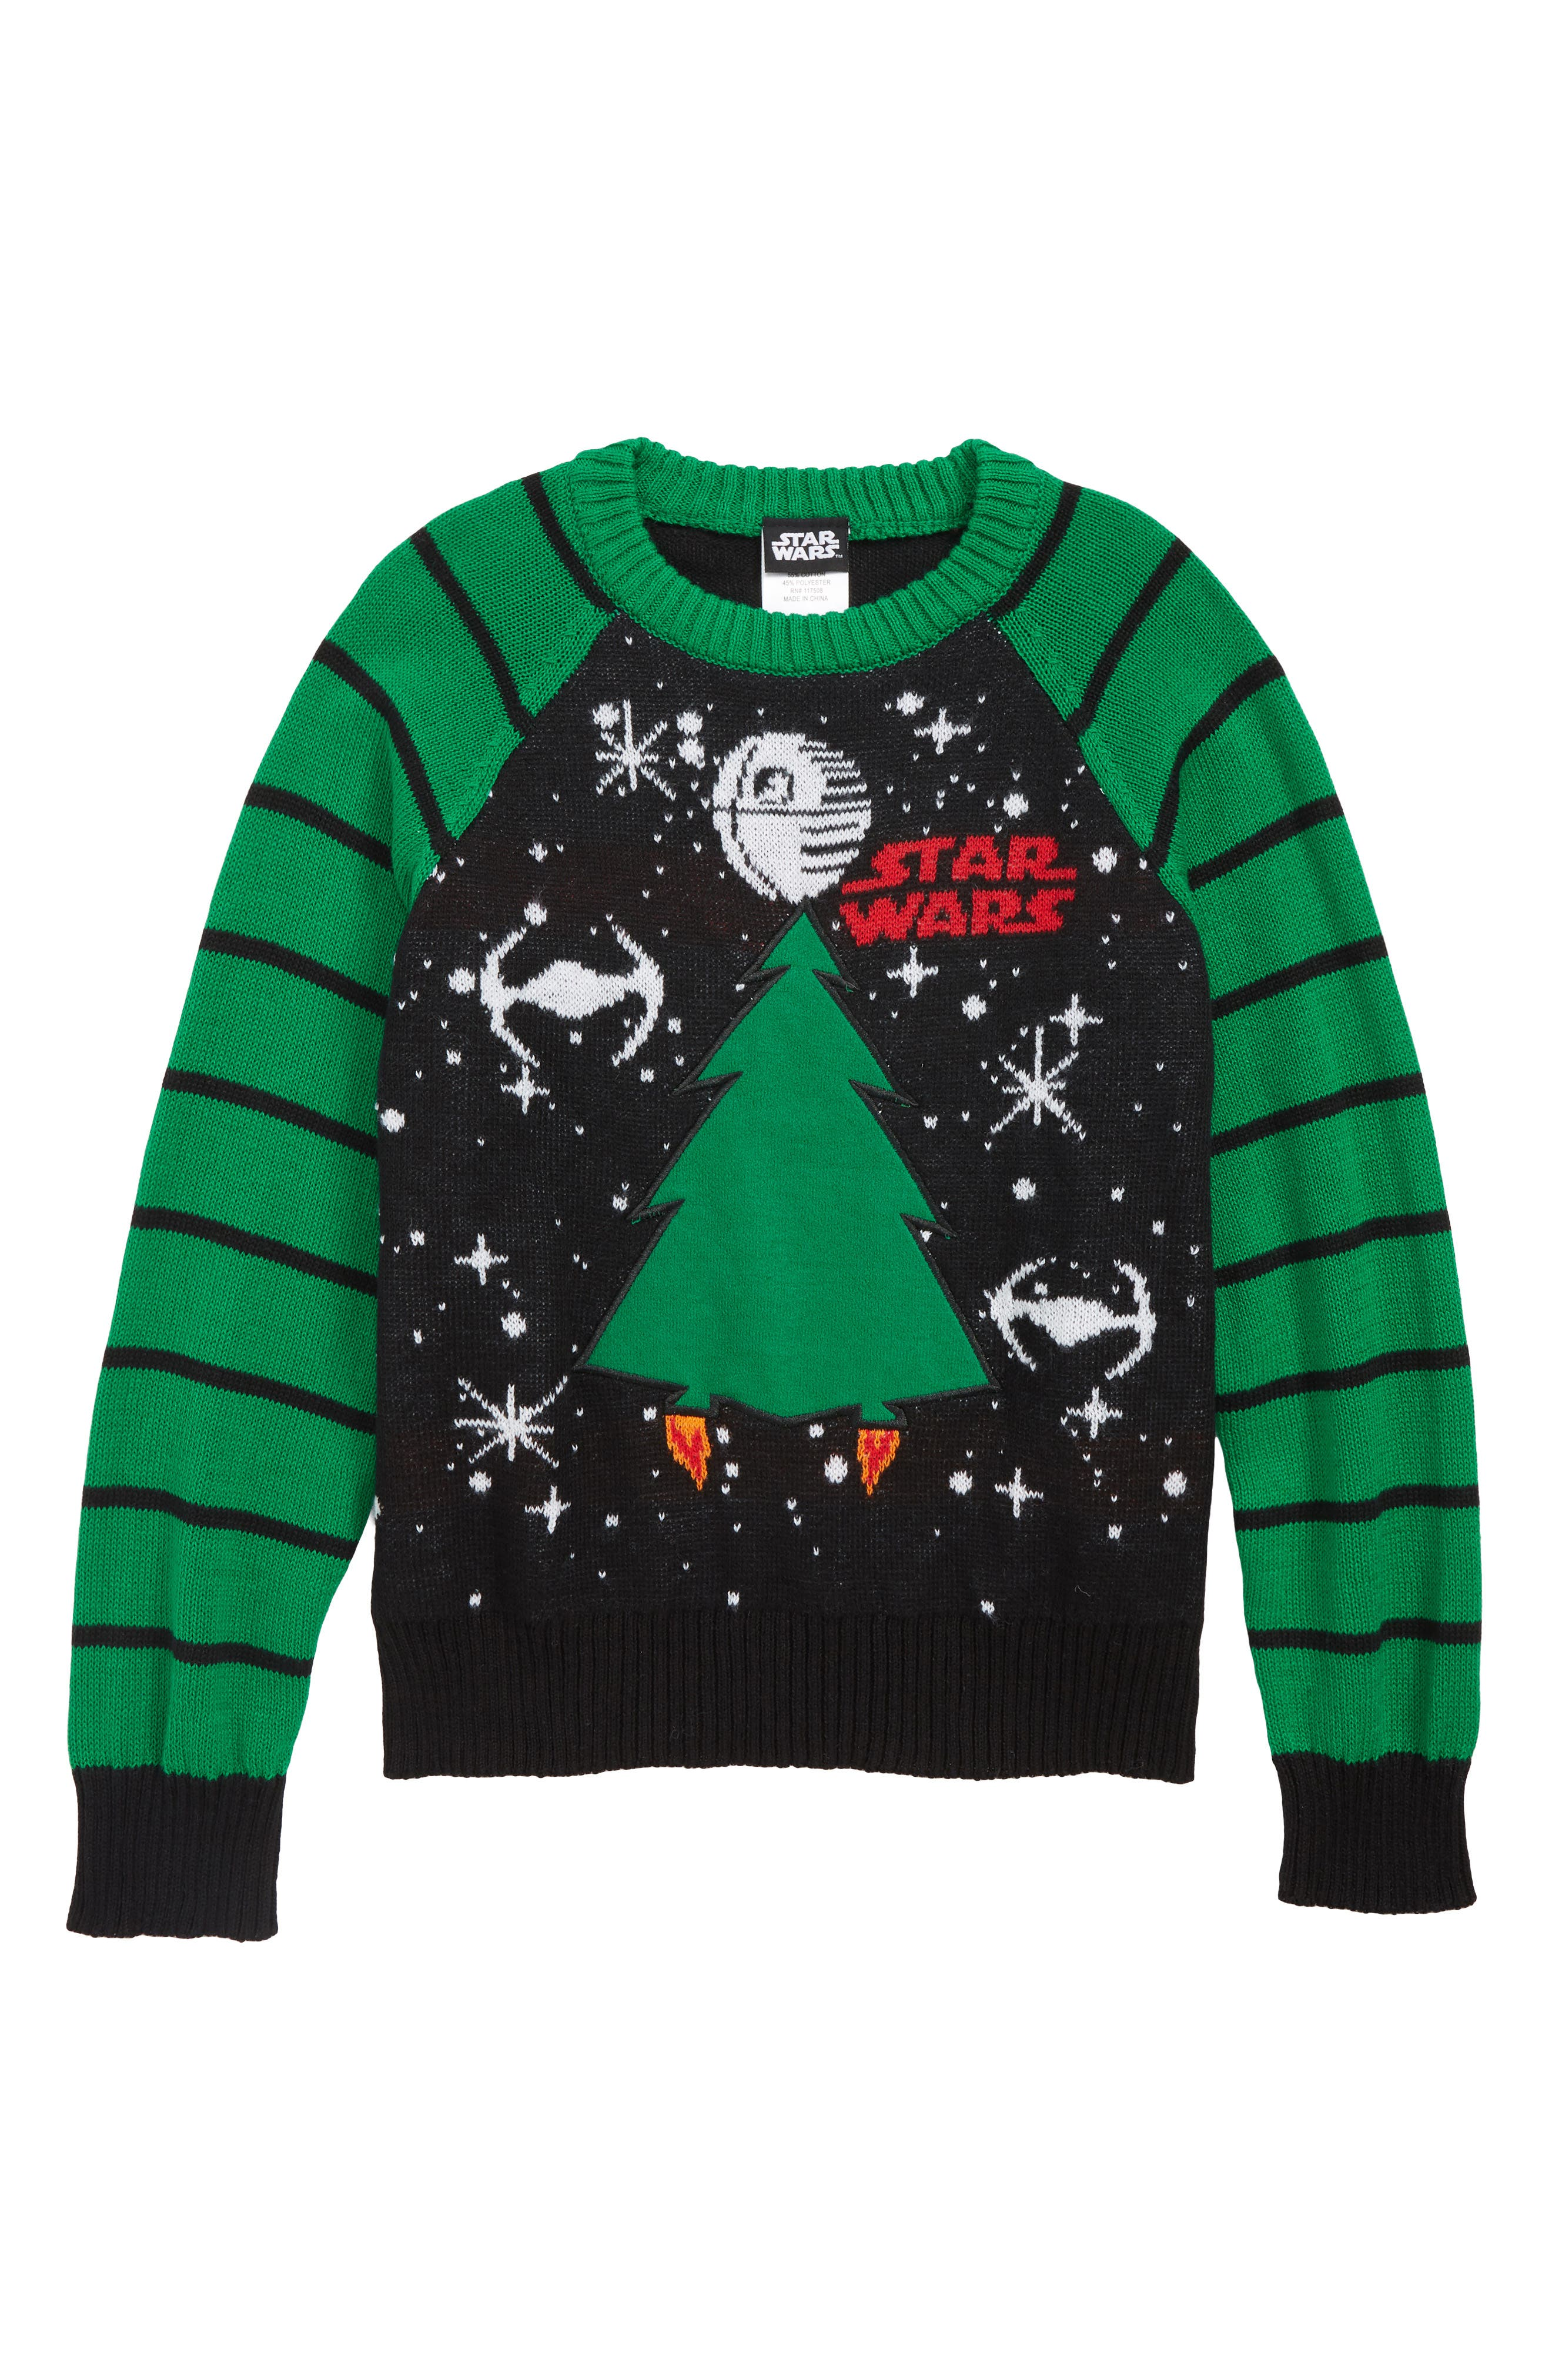 Star Wars<sup>™</sup> Removable Patch Holiday Sweater,                             Main thumbnail 1, color,                             BLACK